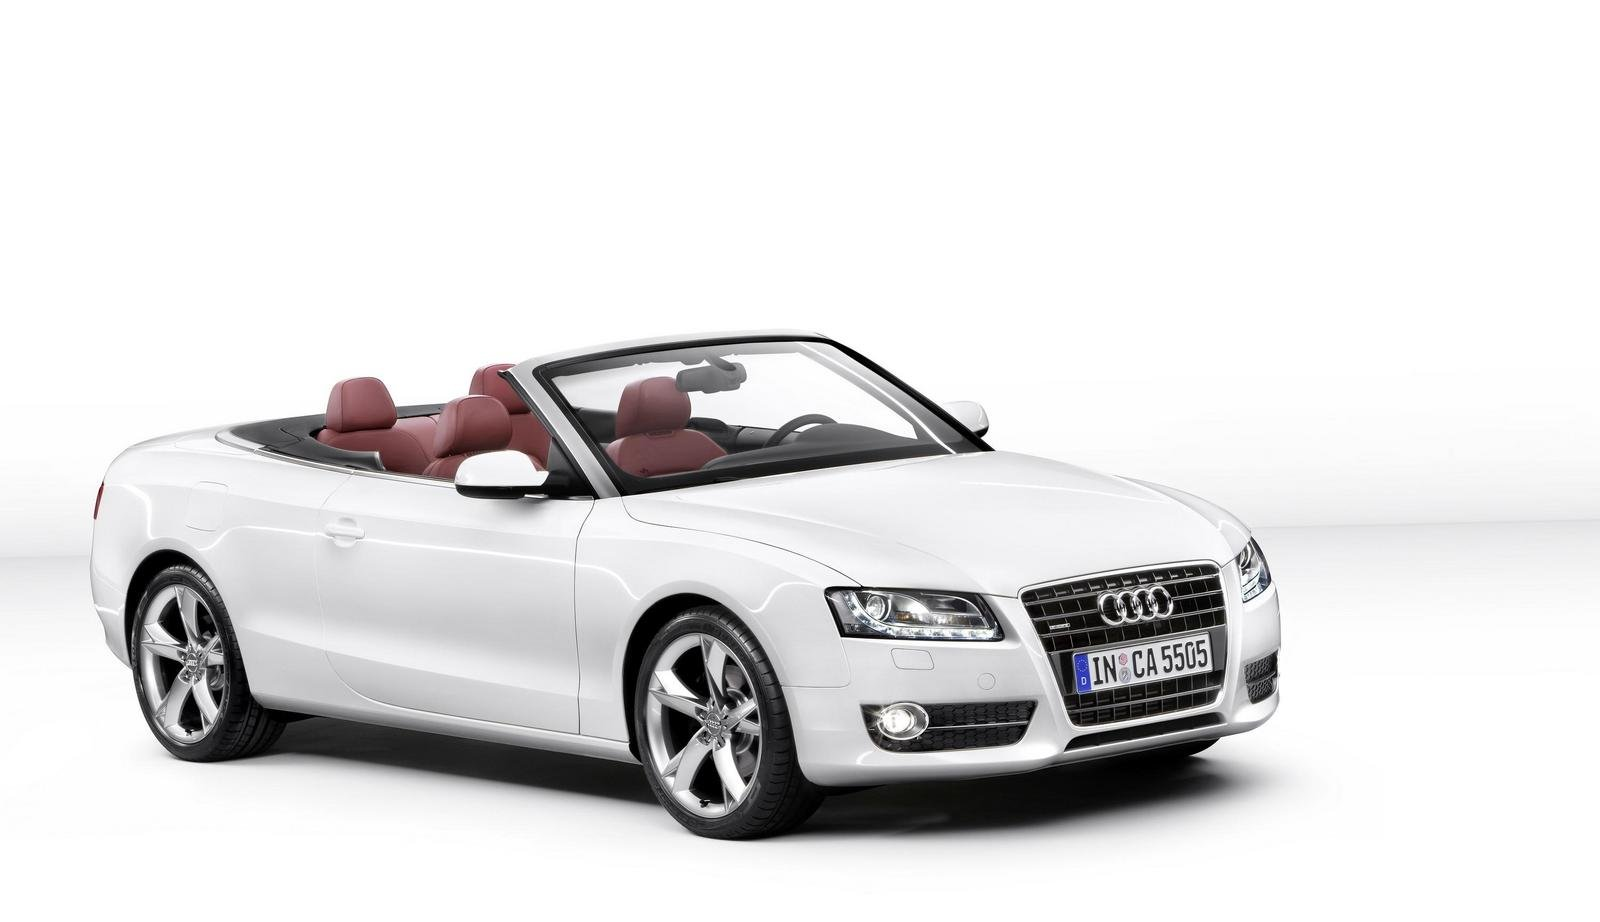 2009 audi a5 s5 convertible picture 275981 car review. Black Bedroom Furniture Sets. Home Design Ideas